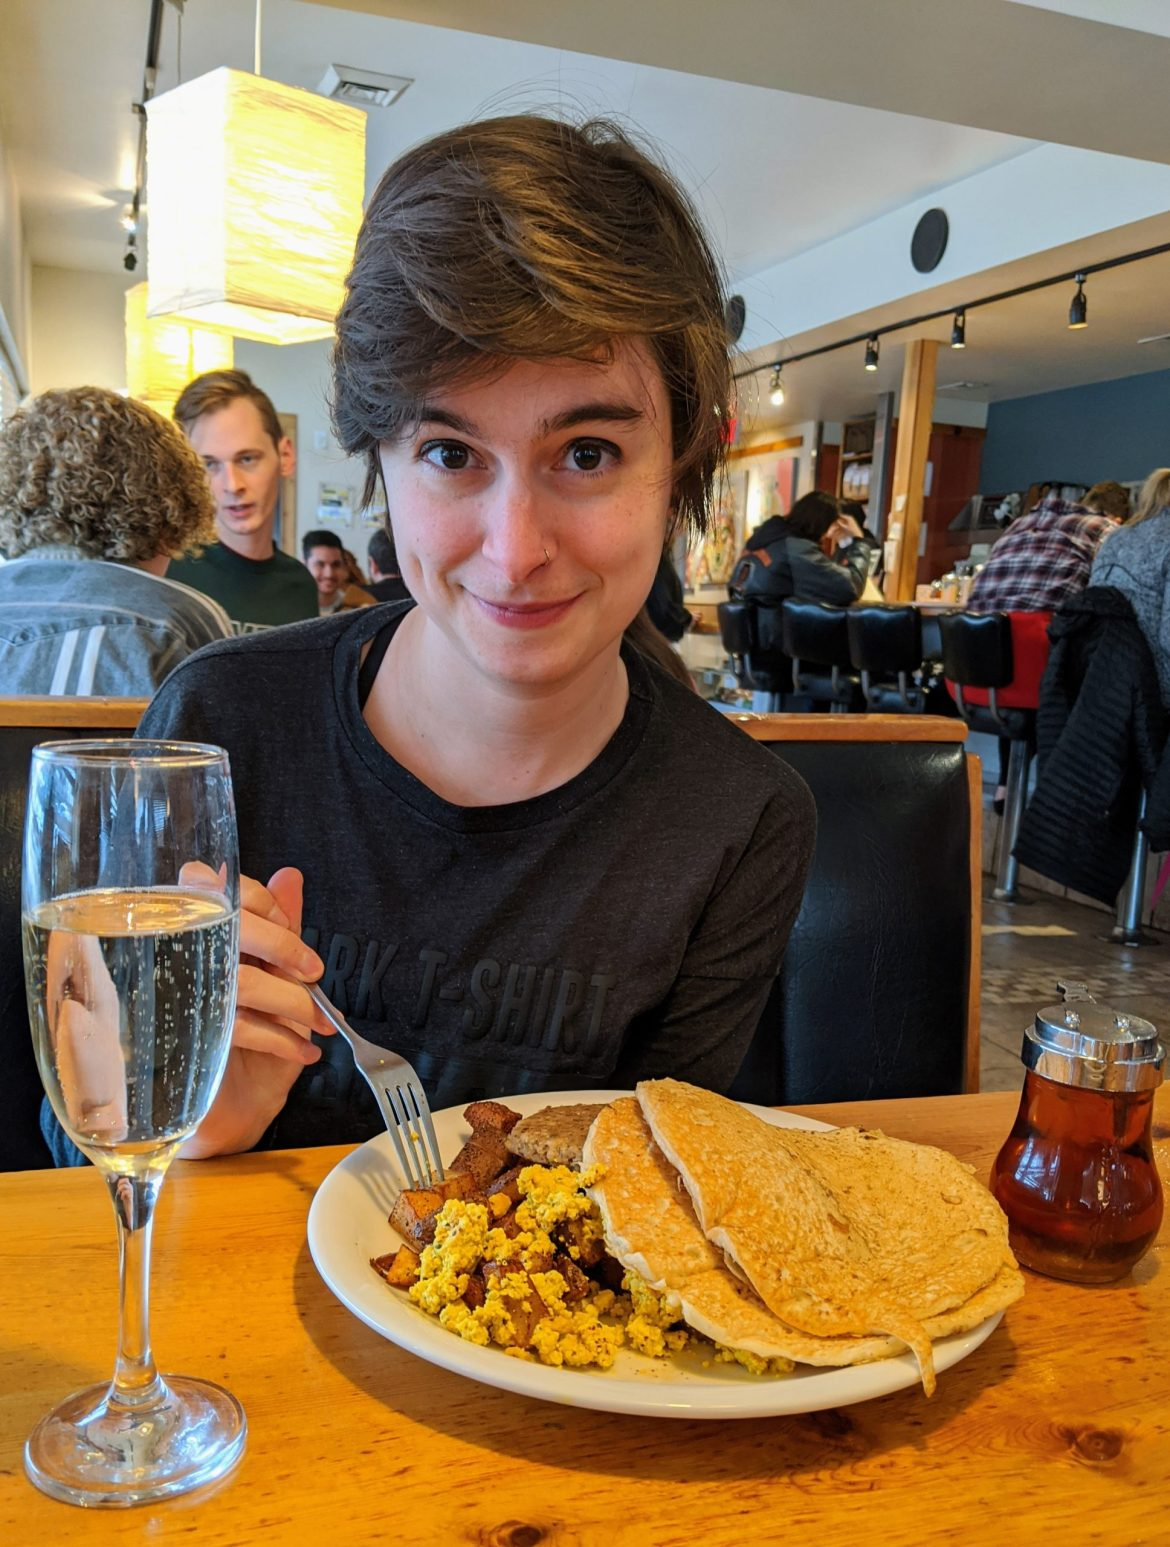 woman smiling at the camera with a breakfast plate and champagne